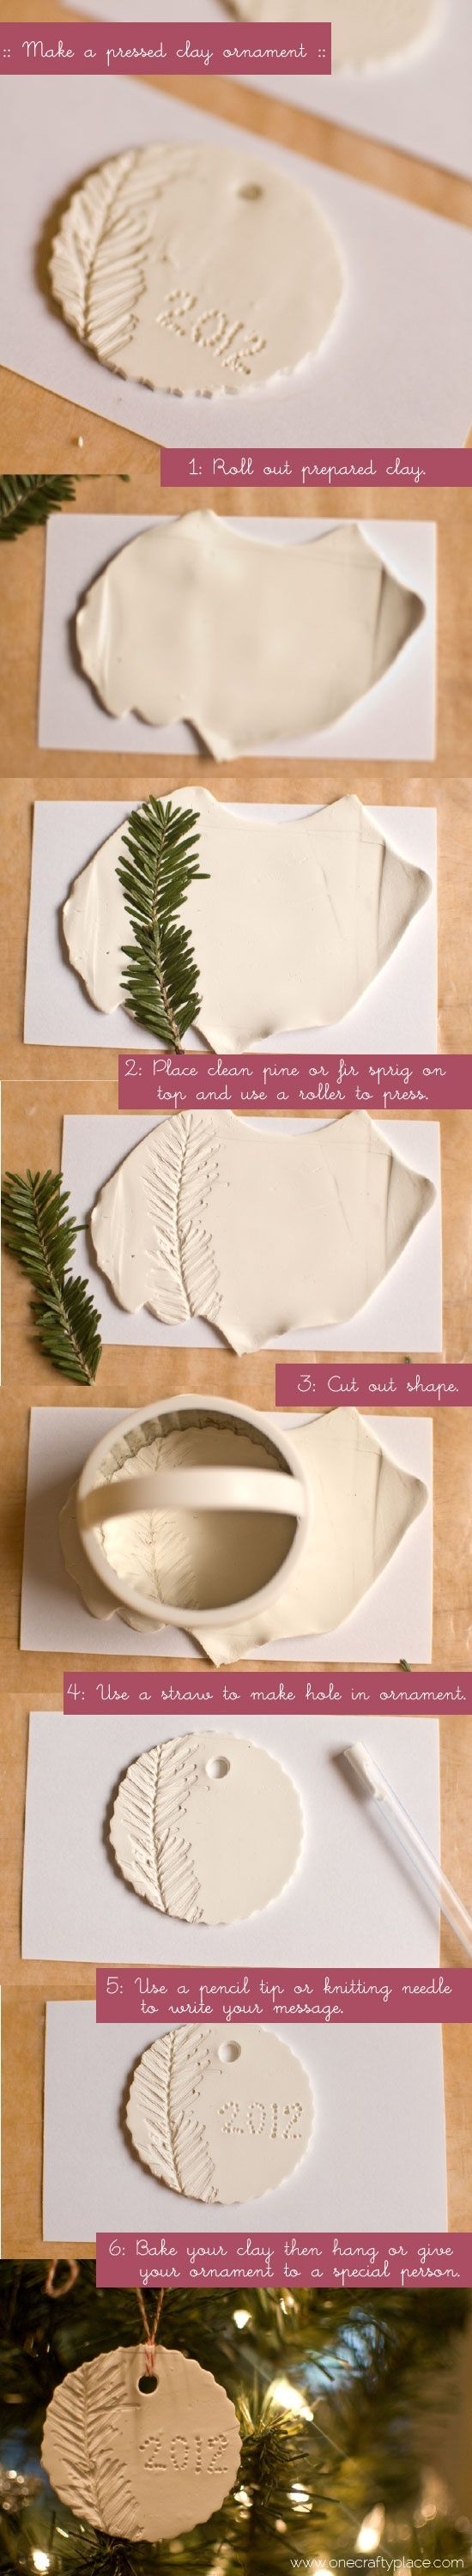 Ornaments with names on them - This Is A Simple And Easy Idea For Ornaments You Can Paint Them When They